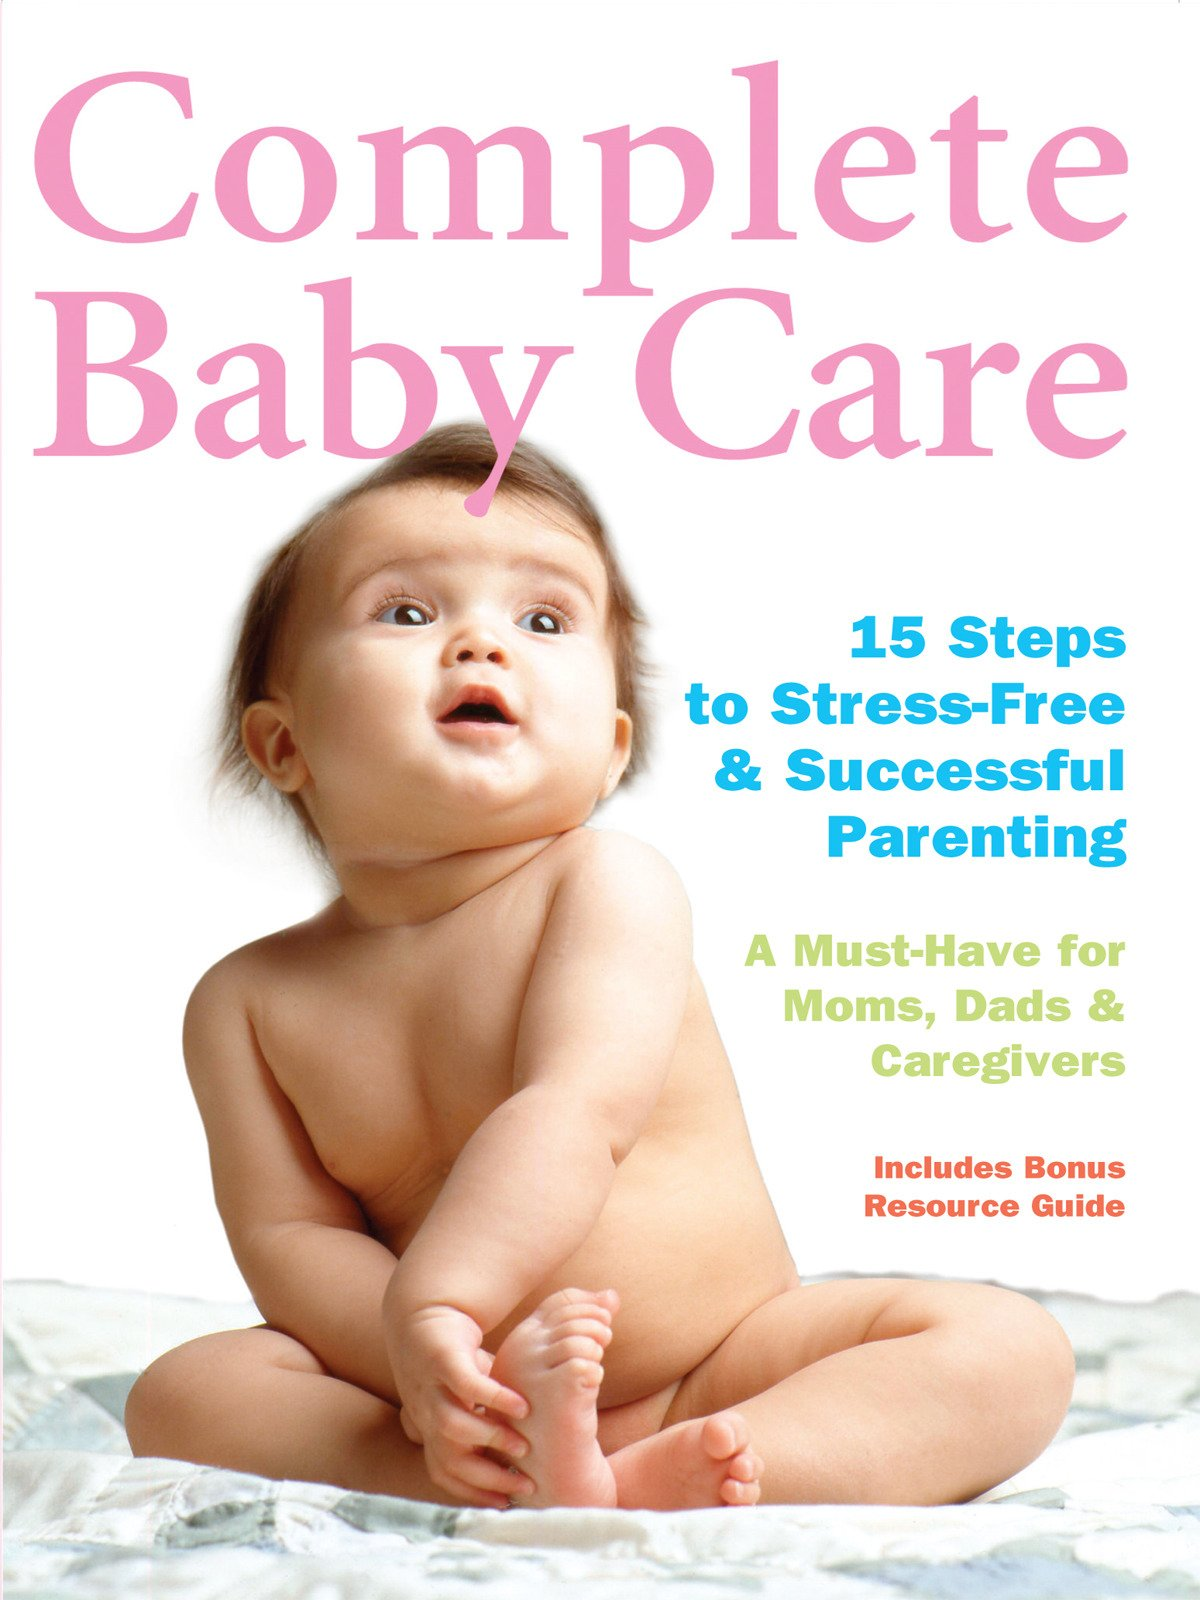 Complete Baby Care - 15 Steps to Stress-Free & Successful Parenting